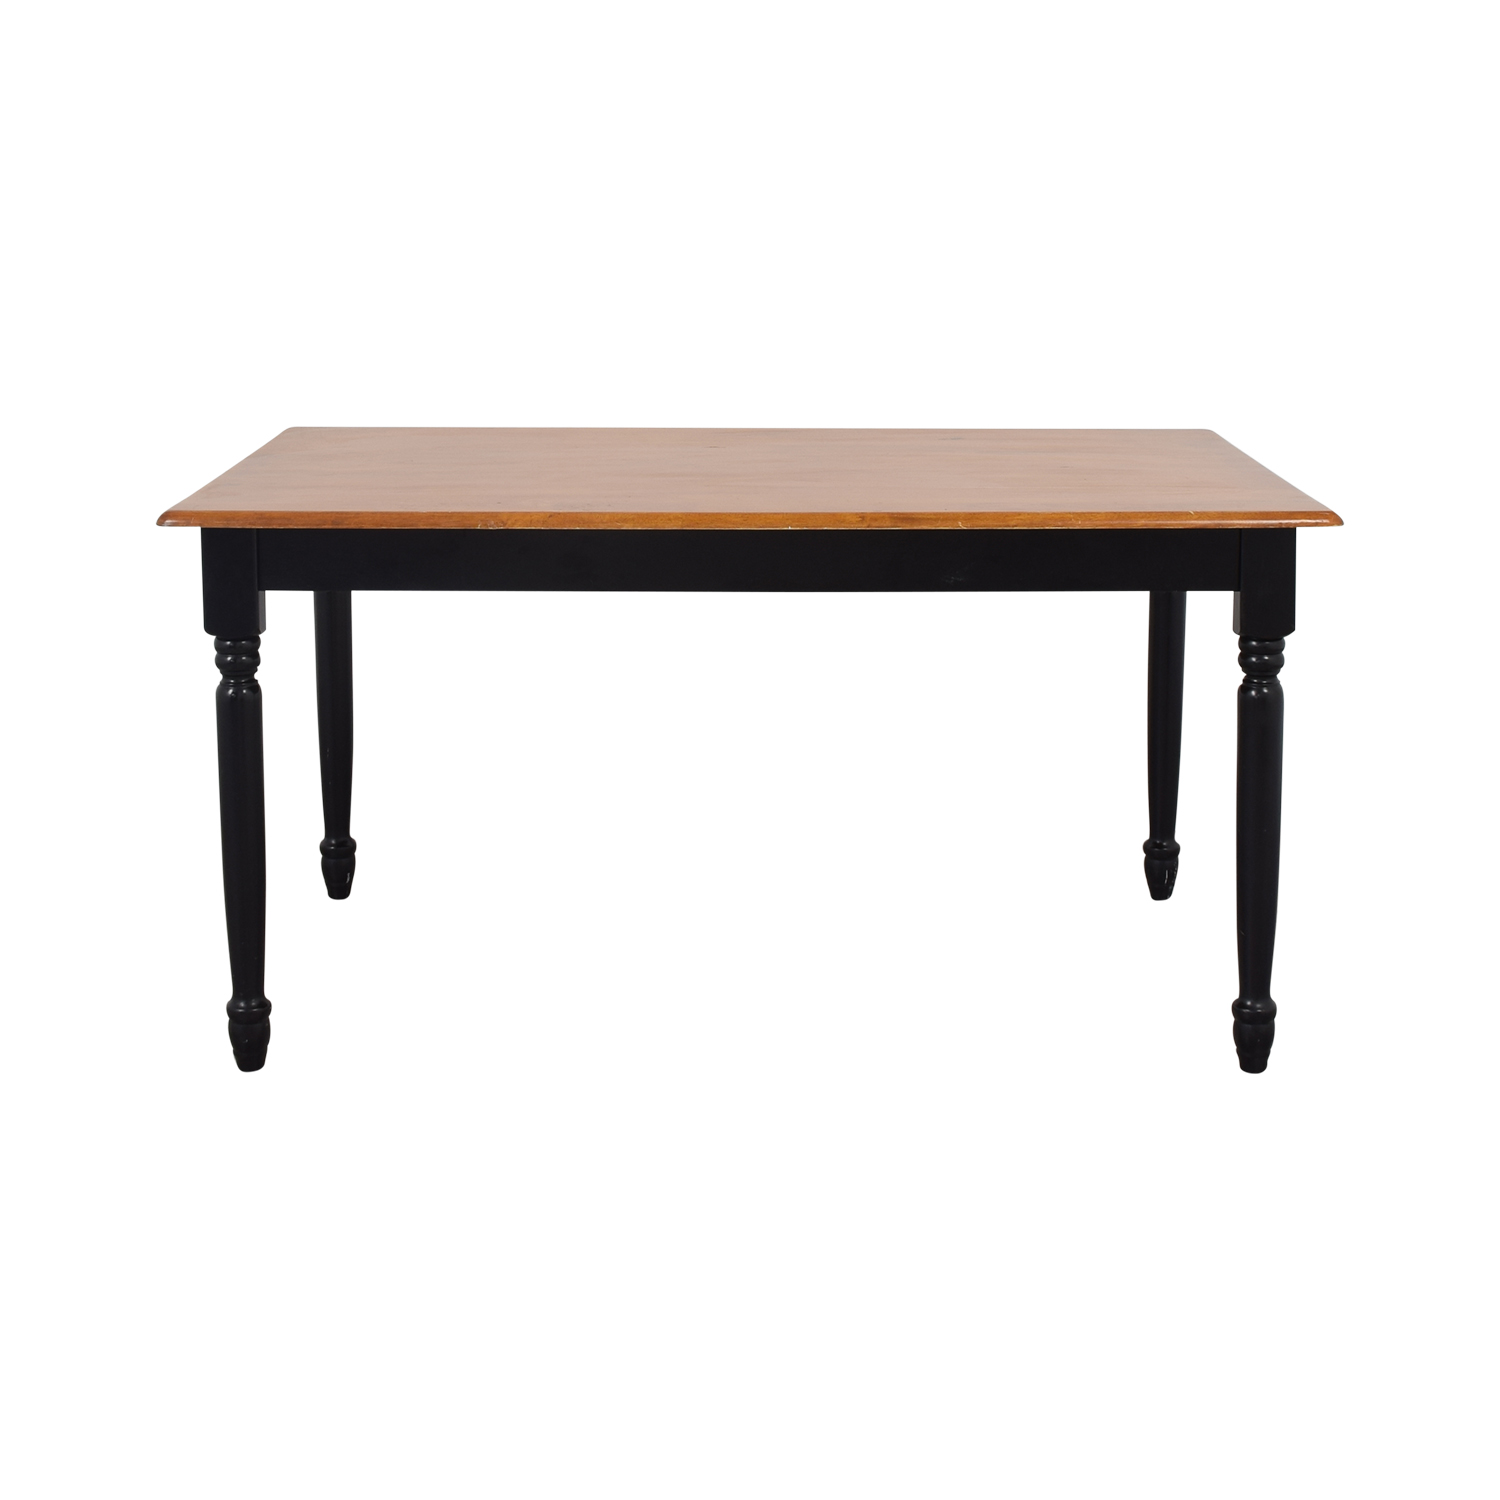 Pottery Barn Pottery Barn Wood Dining Table coupon